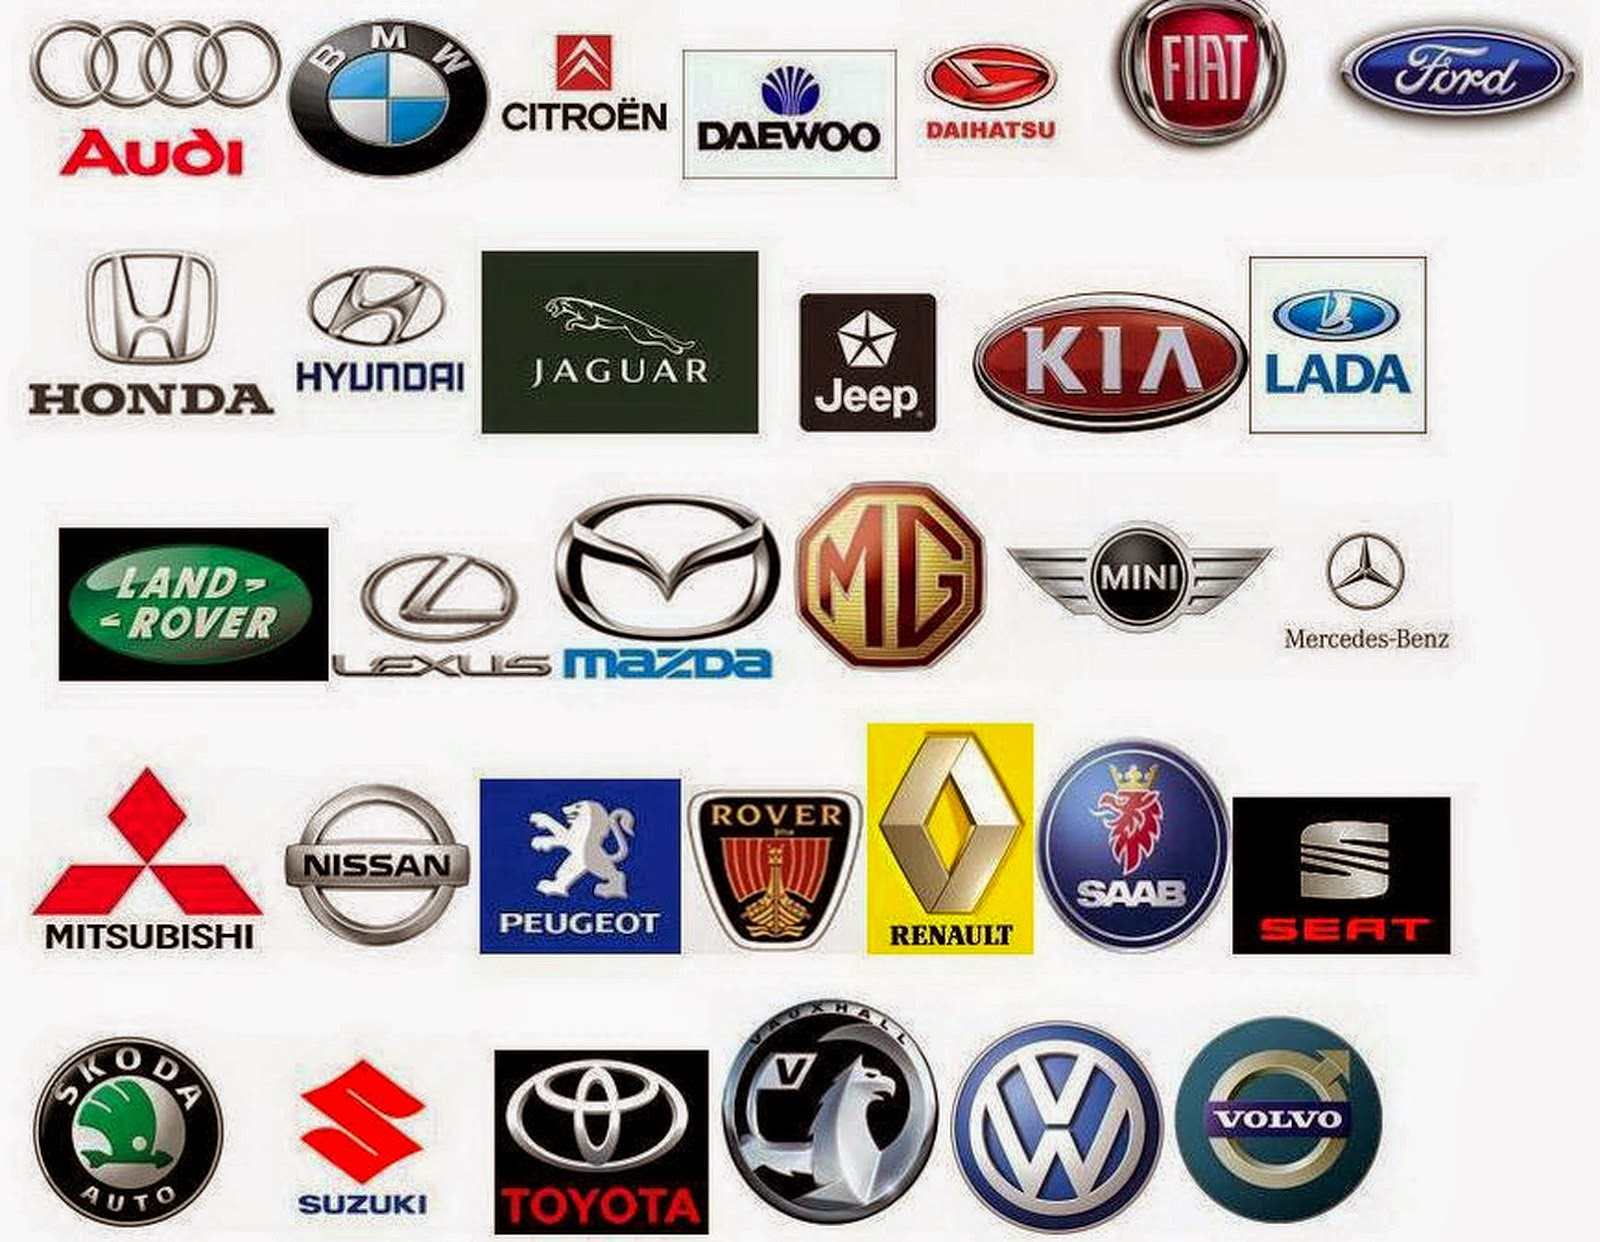 Car logo pictures cars show logos they place symbols and text in juxtaposition to make memorable logos popular car brands like alfa romeo audi maserati skoda lamborghini panoz cizeta biocorpaavc